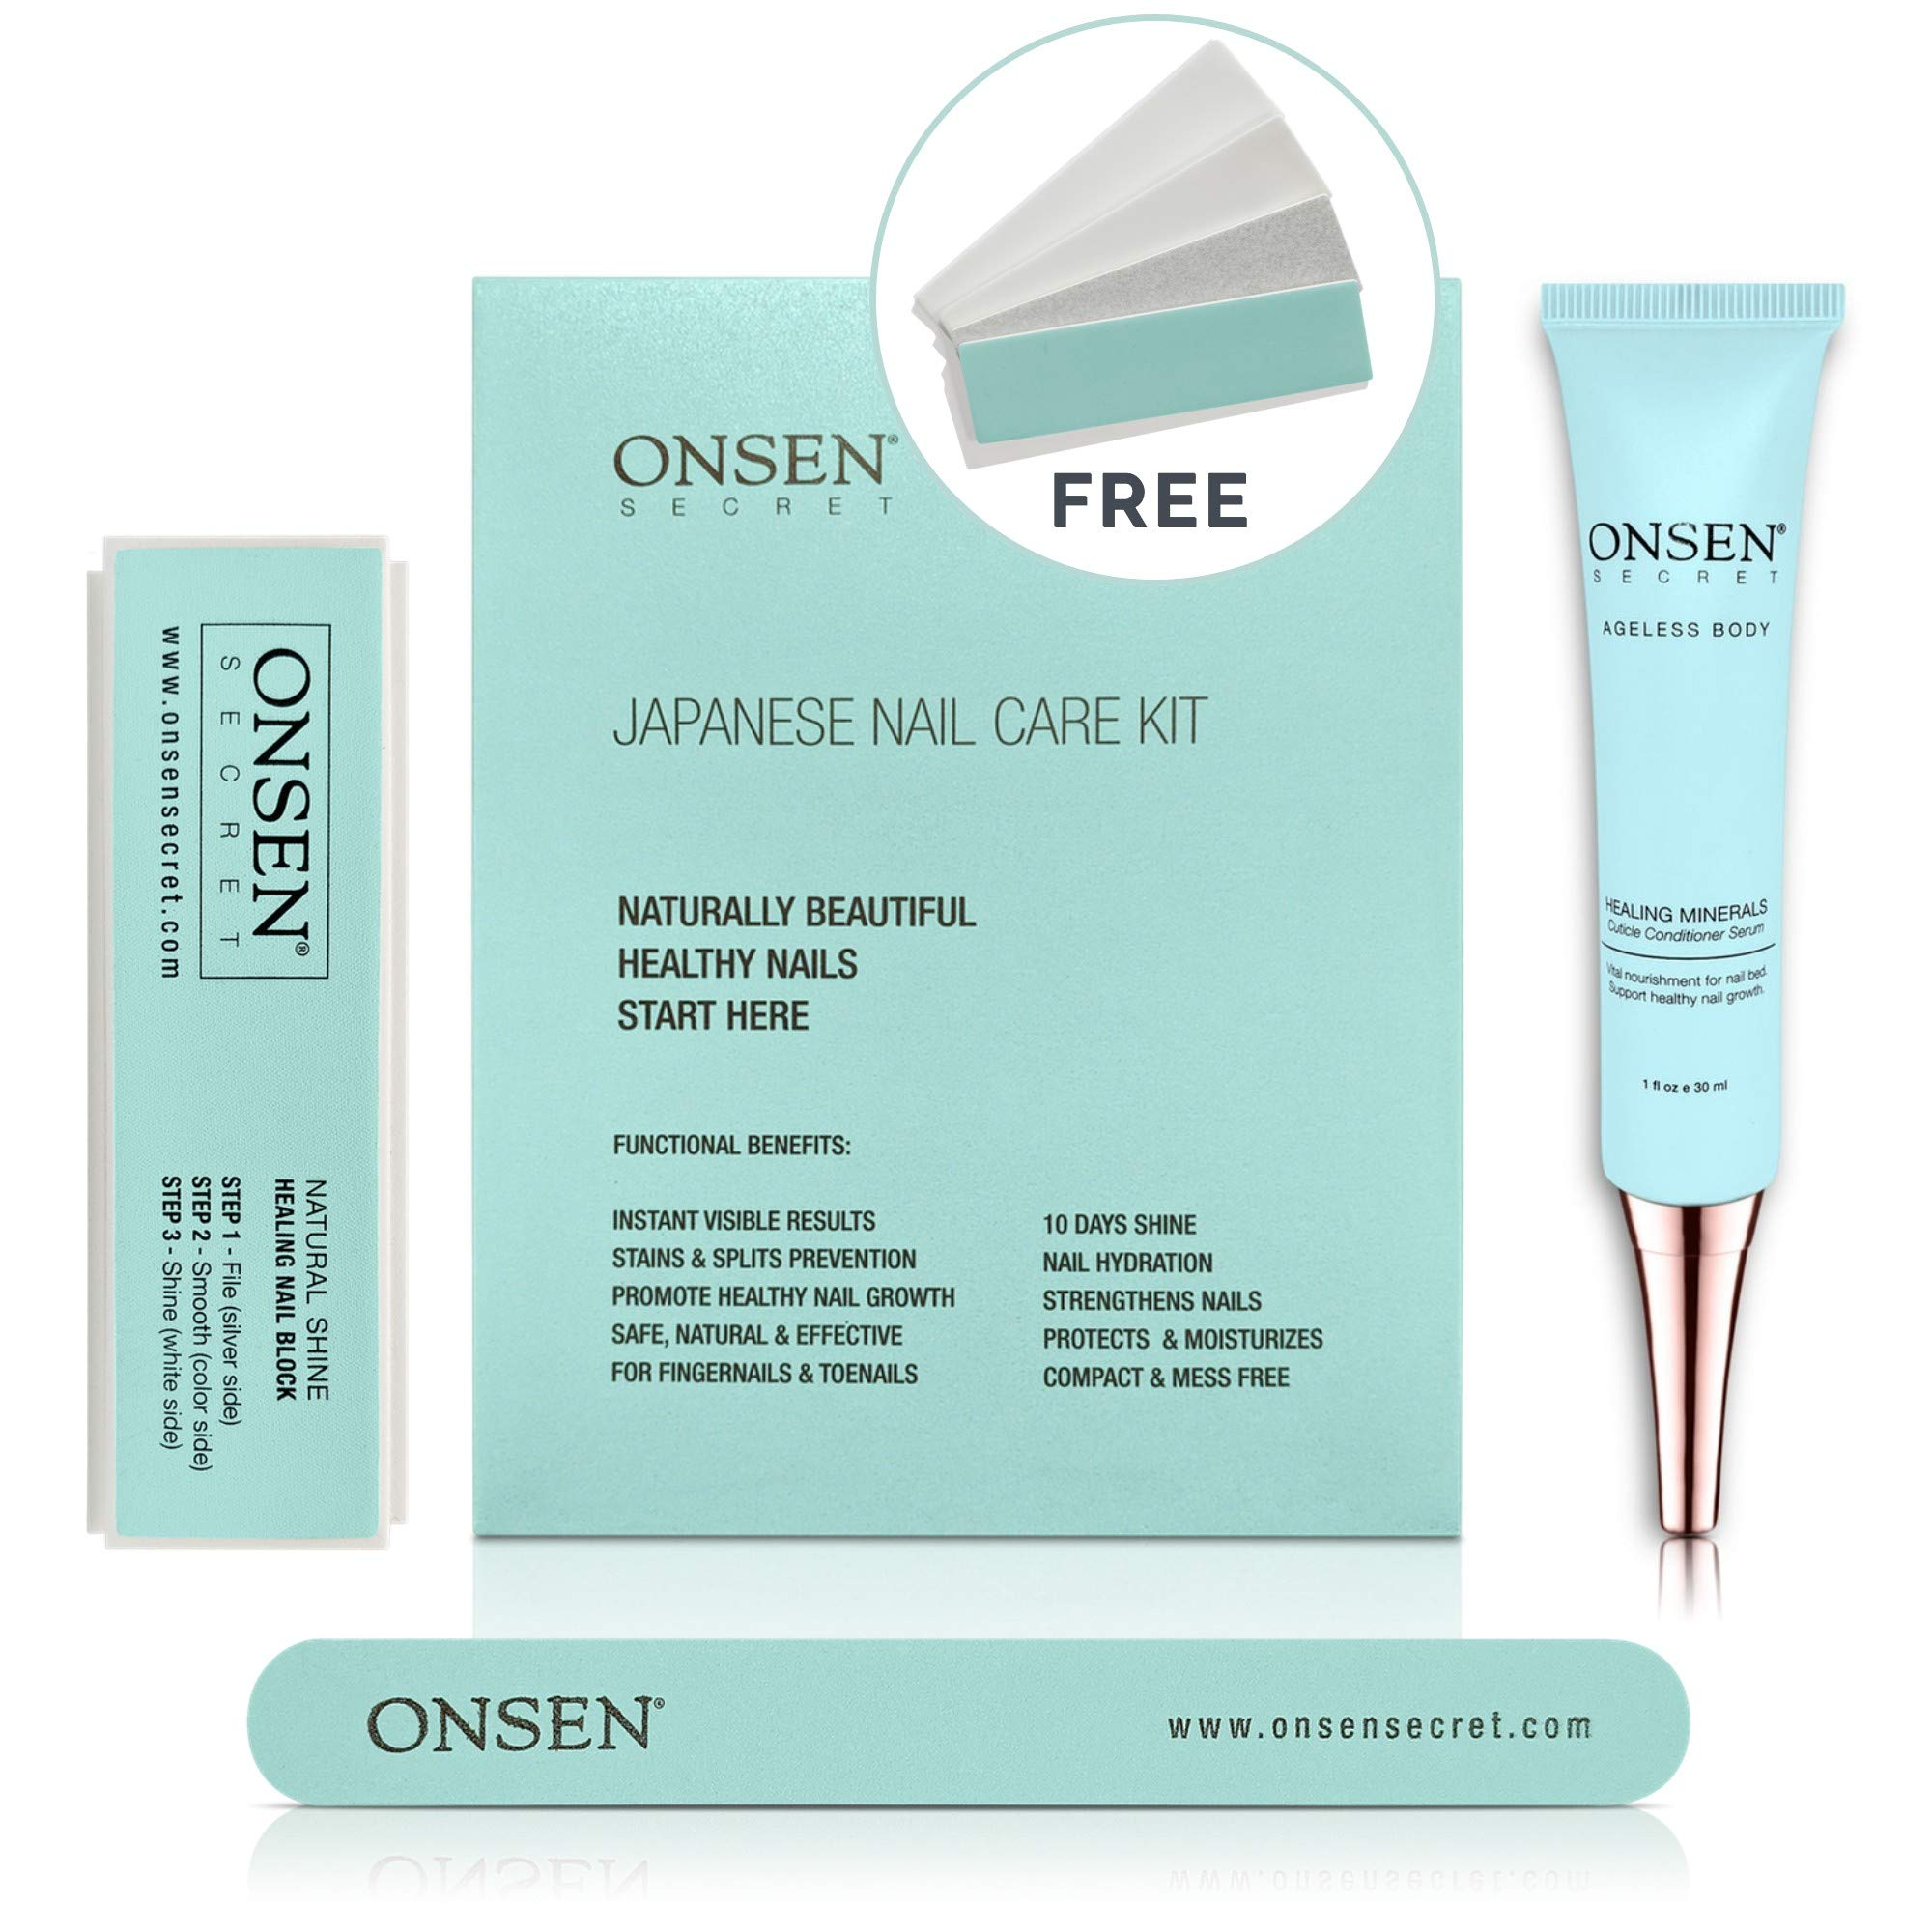 Unique Japanese Nail Care Kit - Professional Nail File, 3-Way Nail Buffer Block And Cuticle Cream With Free Replacement Pads For Perfect Nails - The Most Amazing Travel Size Nail Care Kit We Ever Made by Onsen